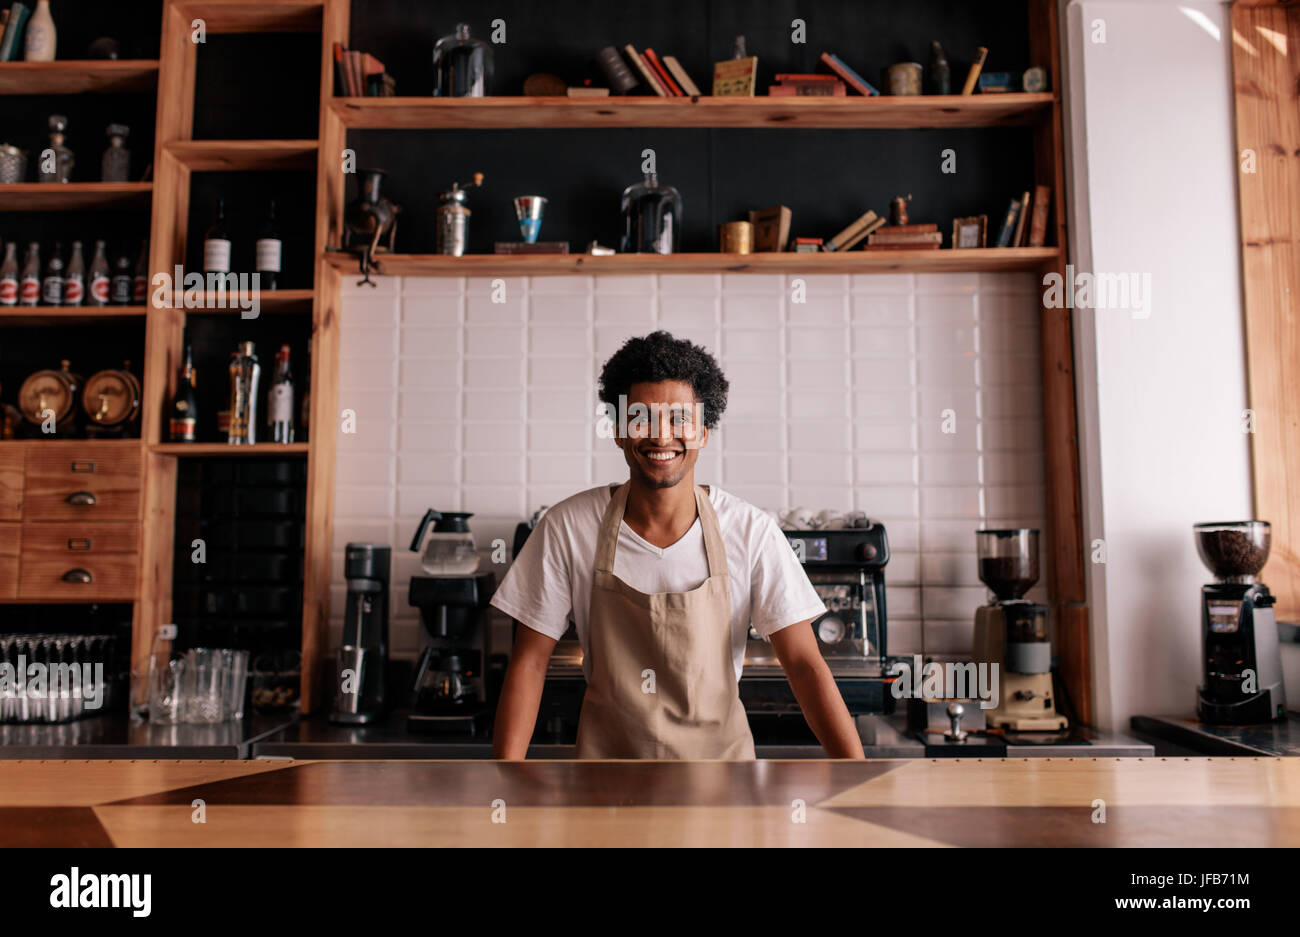 Portrait of professional barista standing at cafe counter. African man in apron looking at camera and smiling. - Stock Image